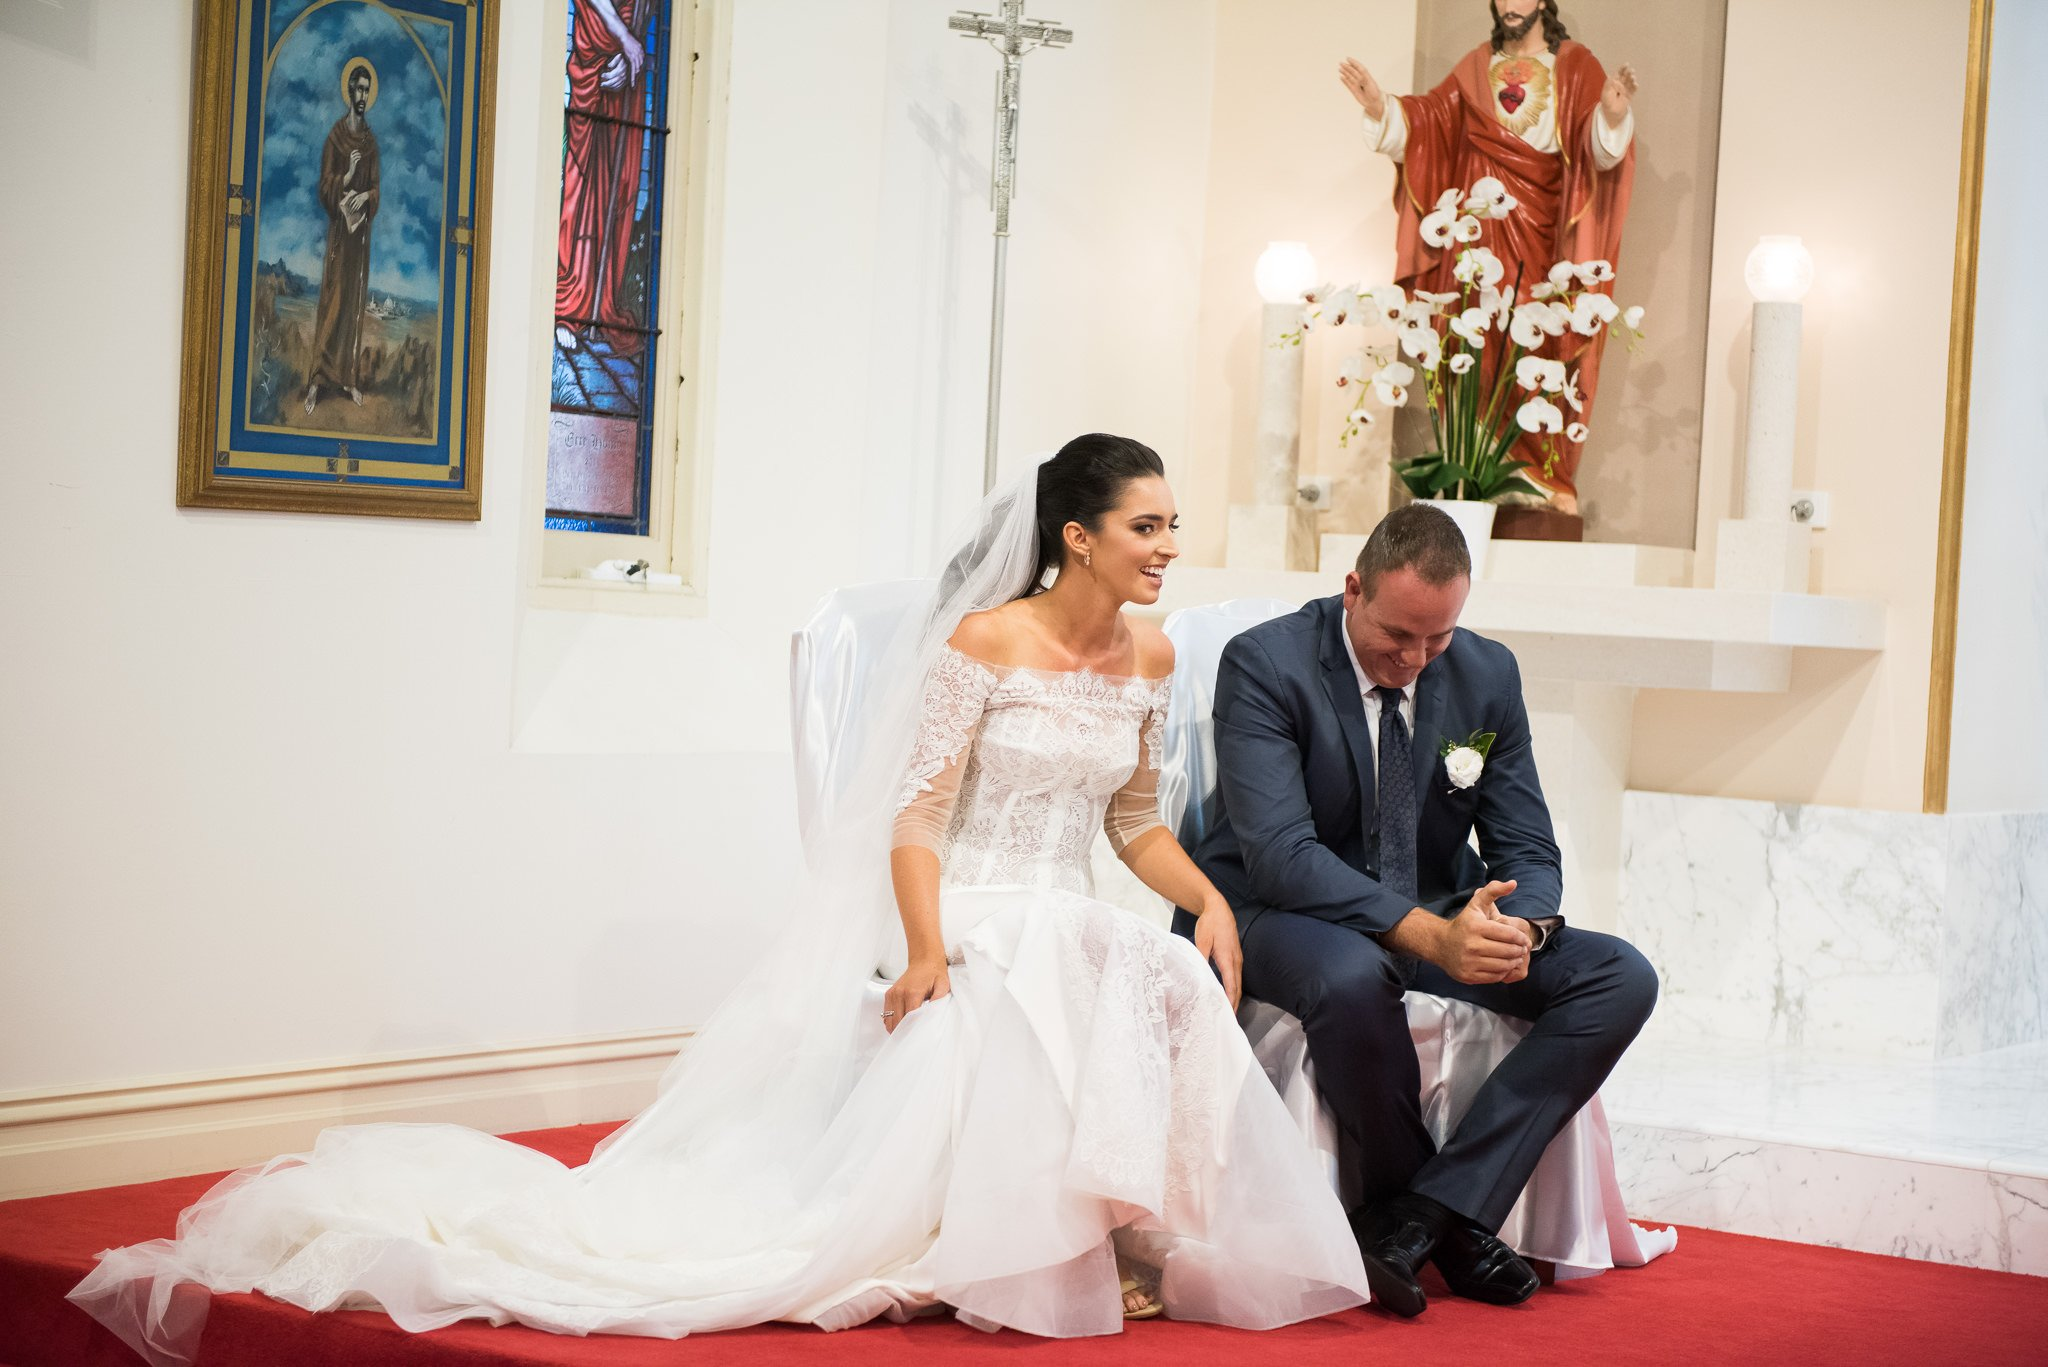 bride and groom candid moment in church